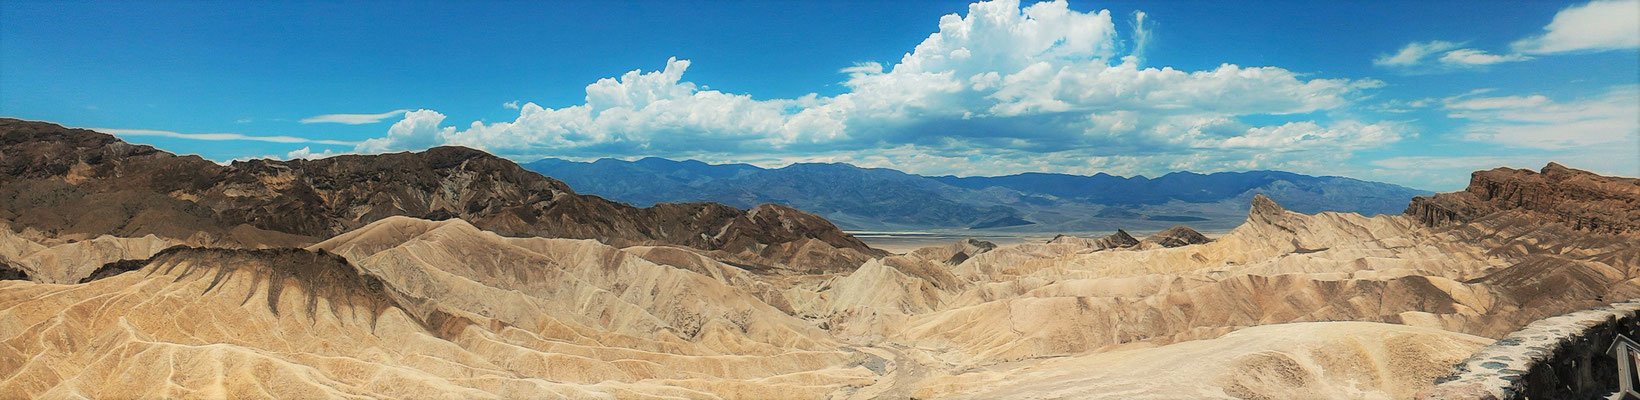 ZABRISKIE POINT DEATH VALLEY NP CALIFORNIE